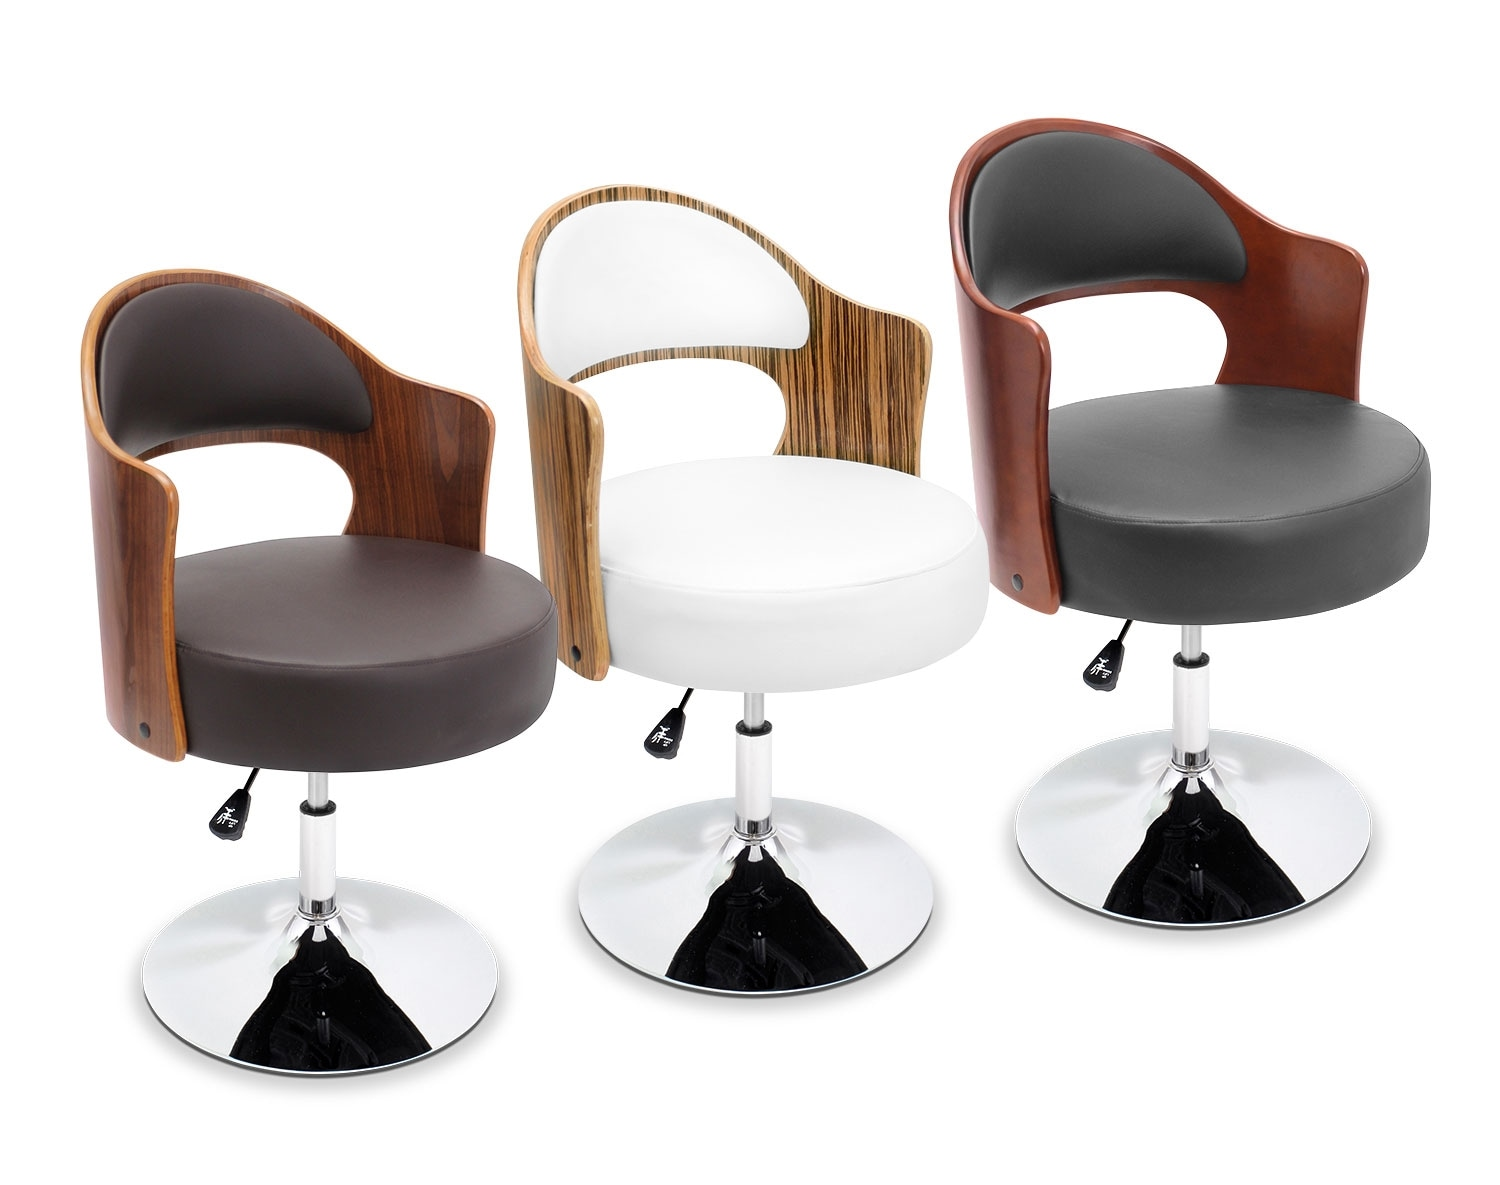 The Park Accent Chair Collection